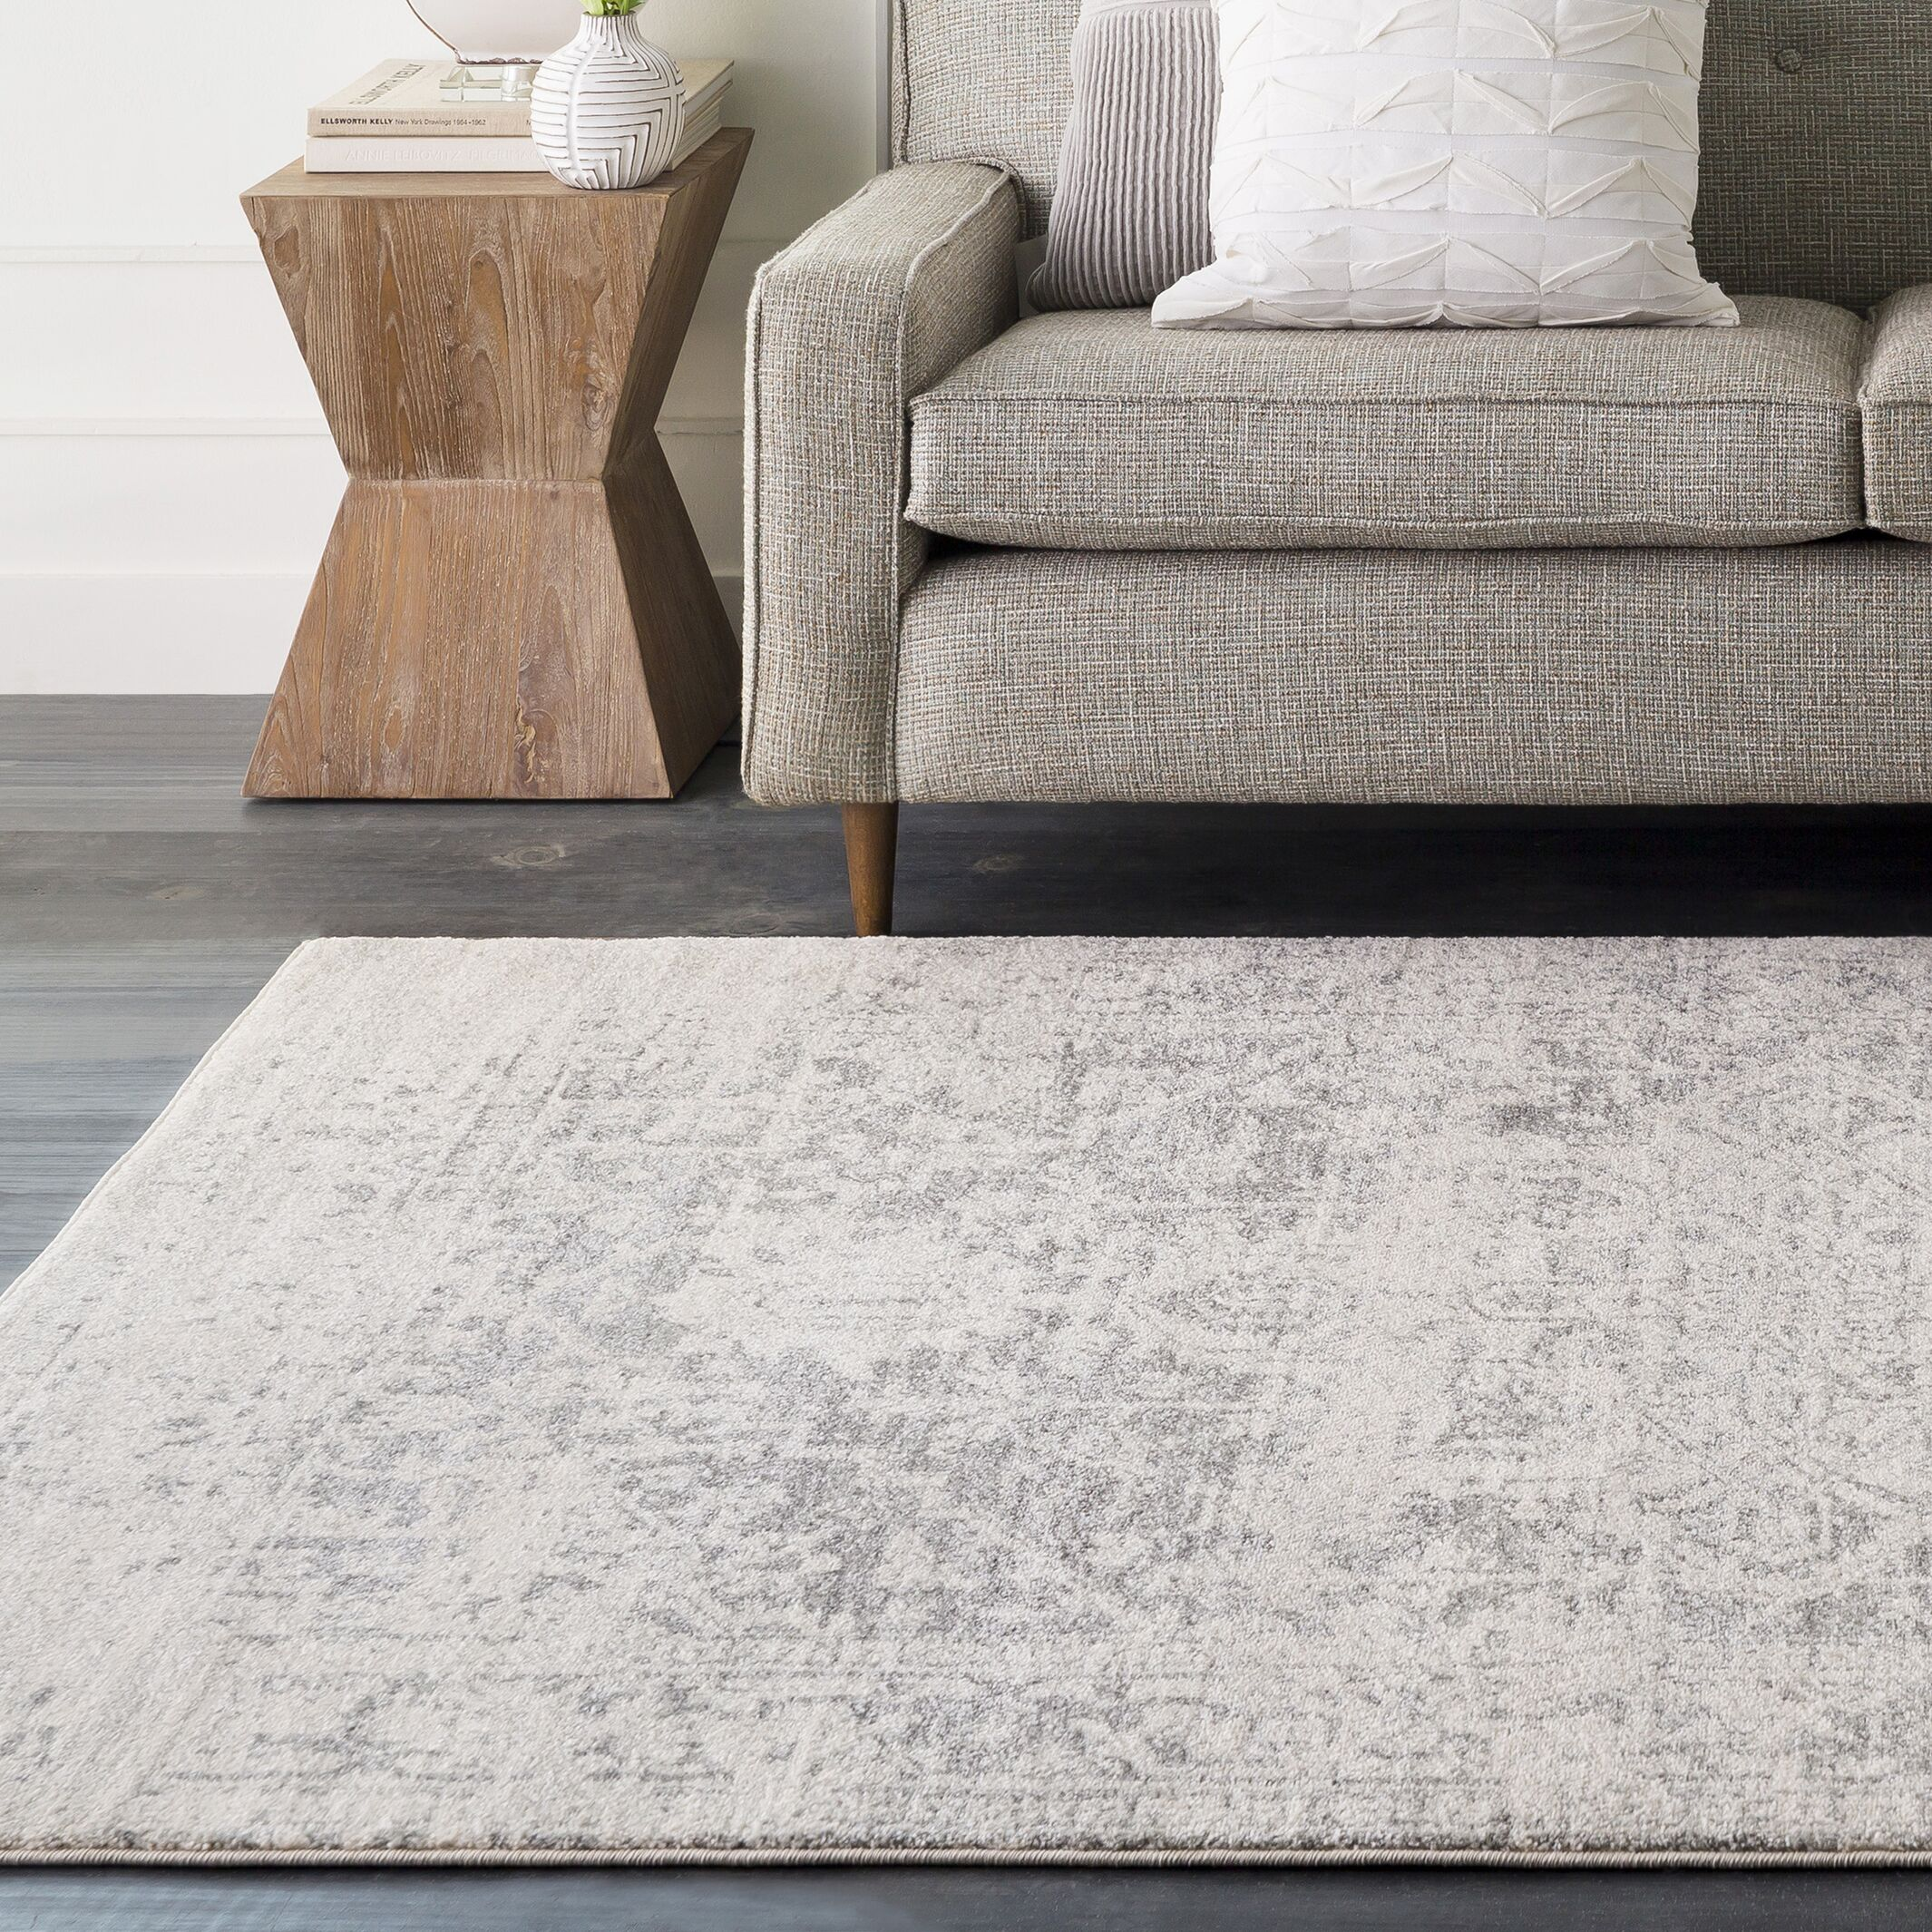 Hillsby Gray/Beige Area Rug Rug Size: Rectangle 10' x 14'